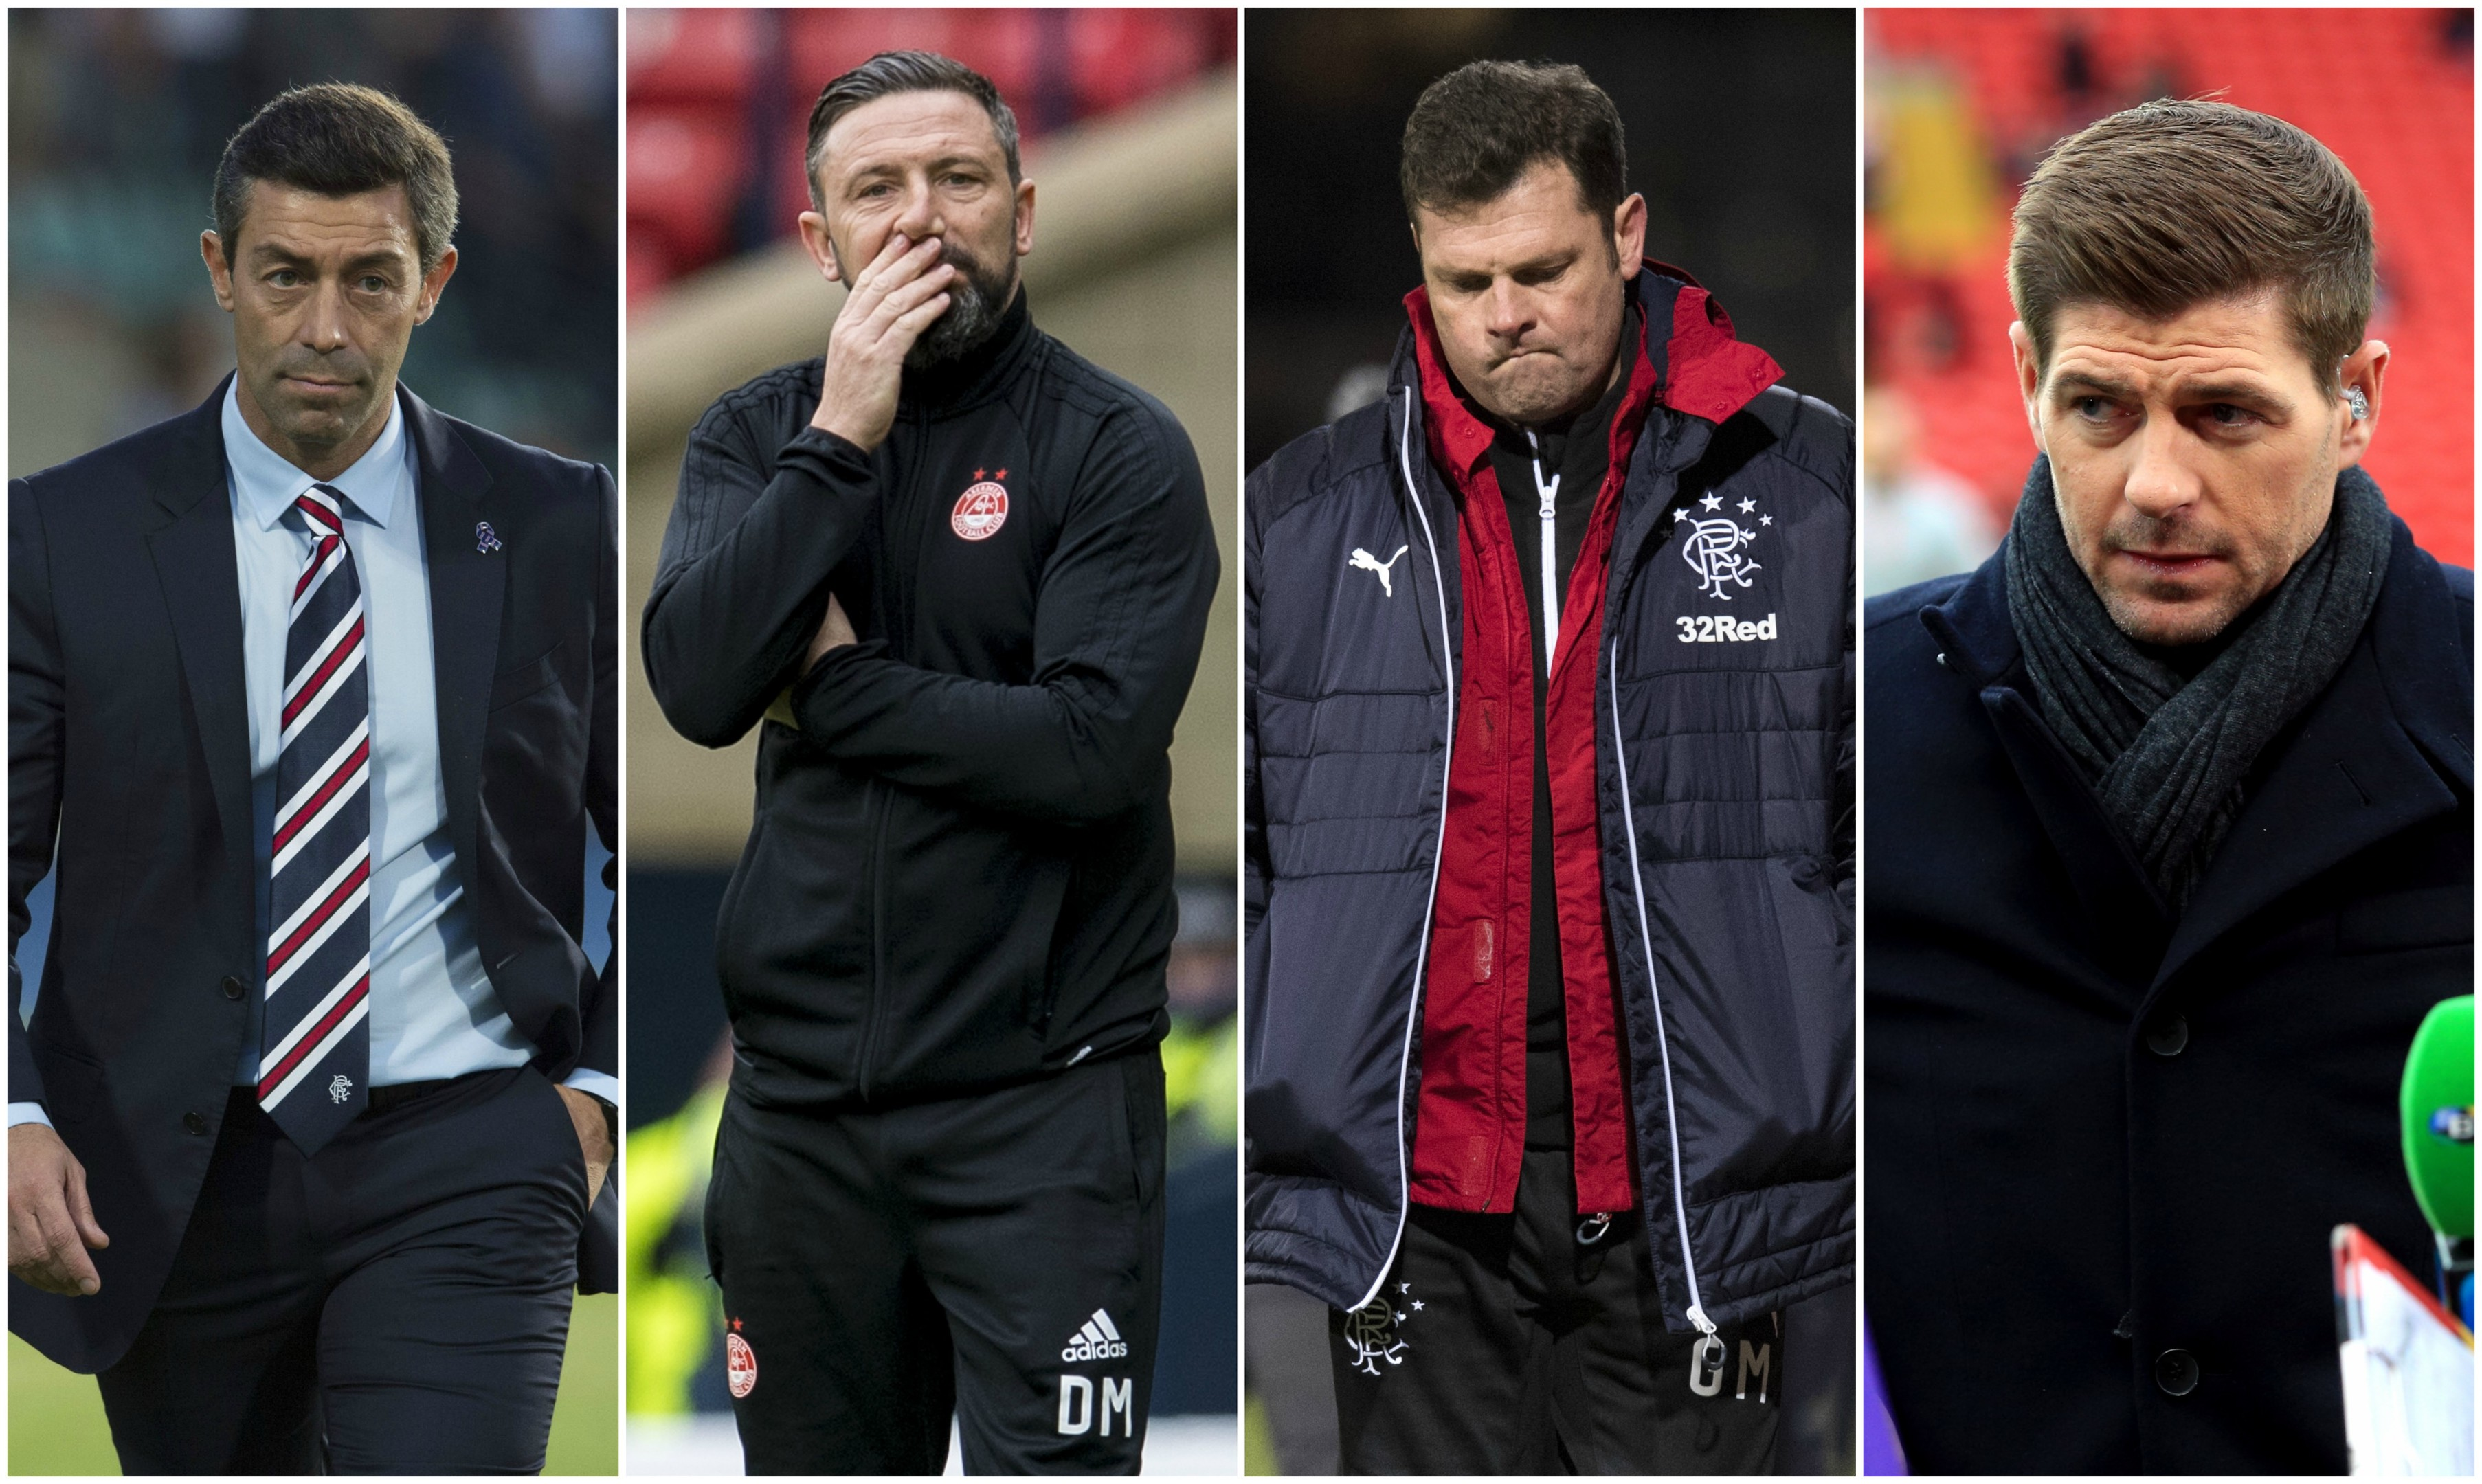 Rangers started the season with Pedro Caixinha in charge, before trying to lure Derek McInnes, then appointing and sacking Graeme Murty and finally eyeing Steven Gerrard for next season